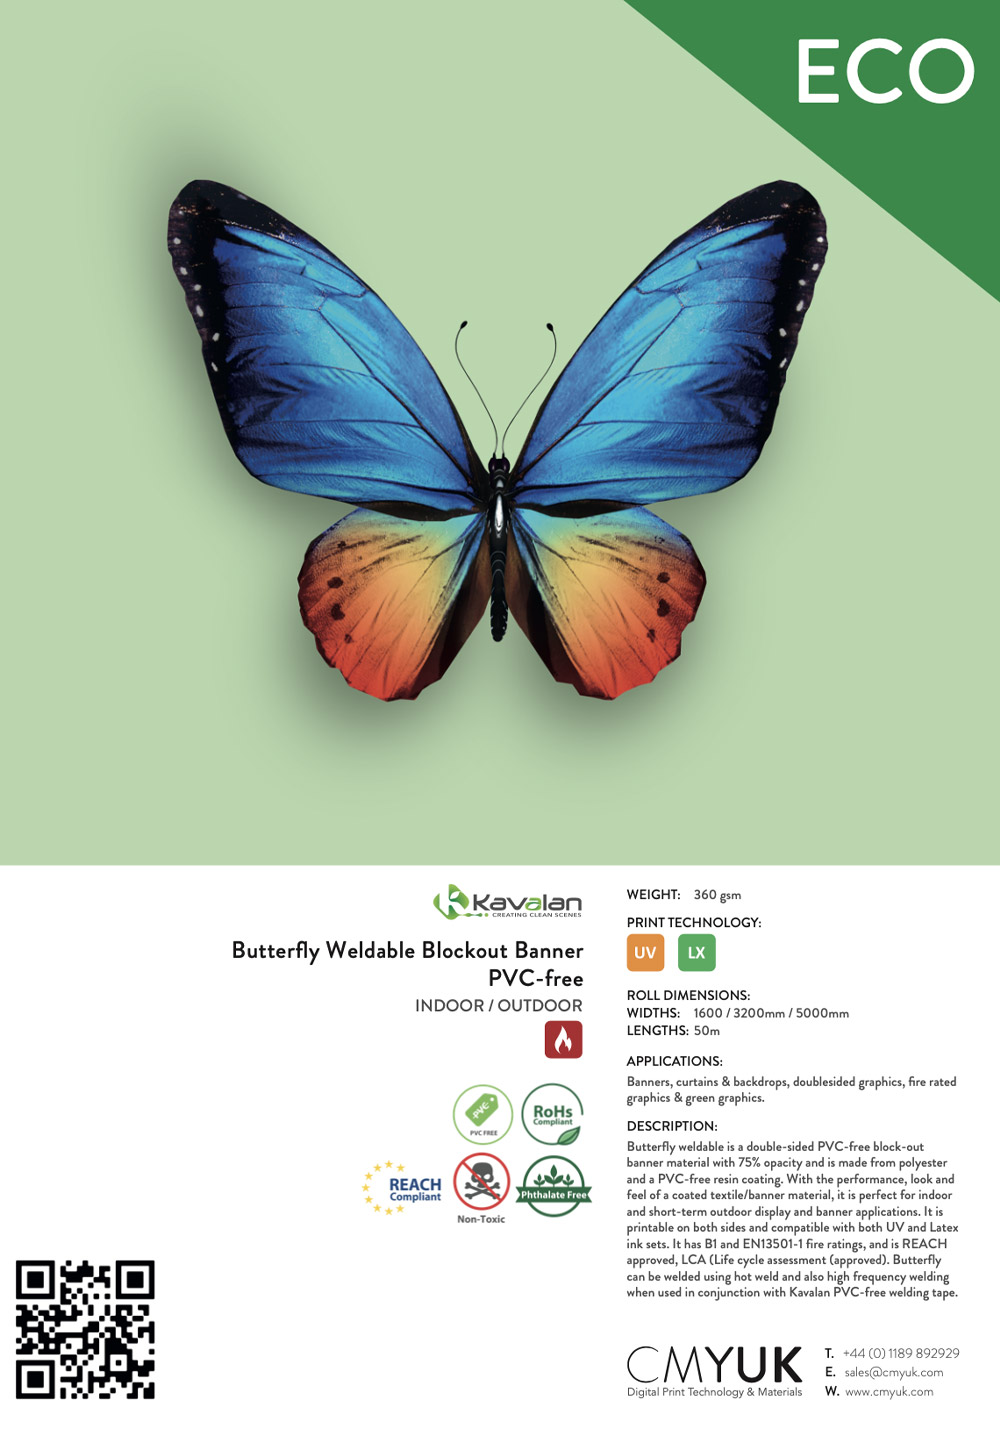 Kavalan Butterfly Weldable Blockout Banner PVC-free